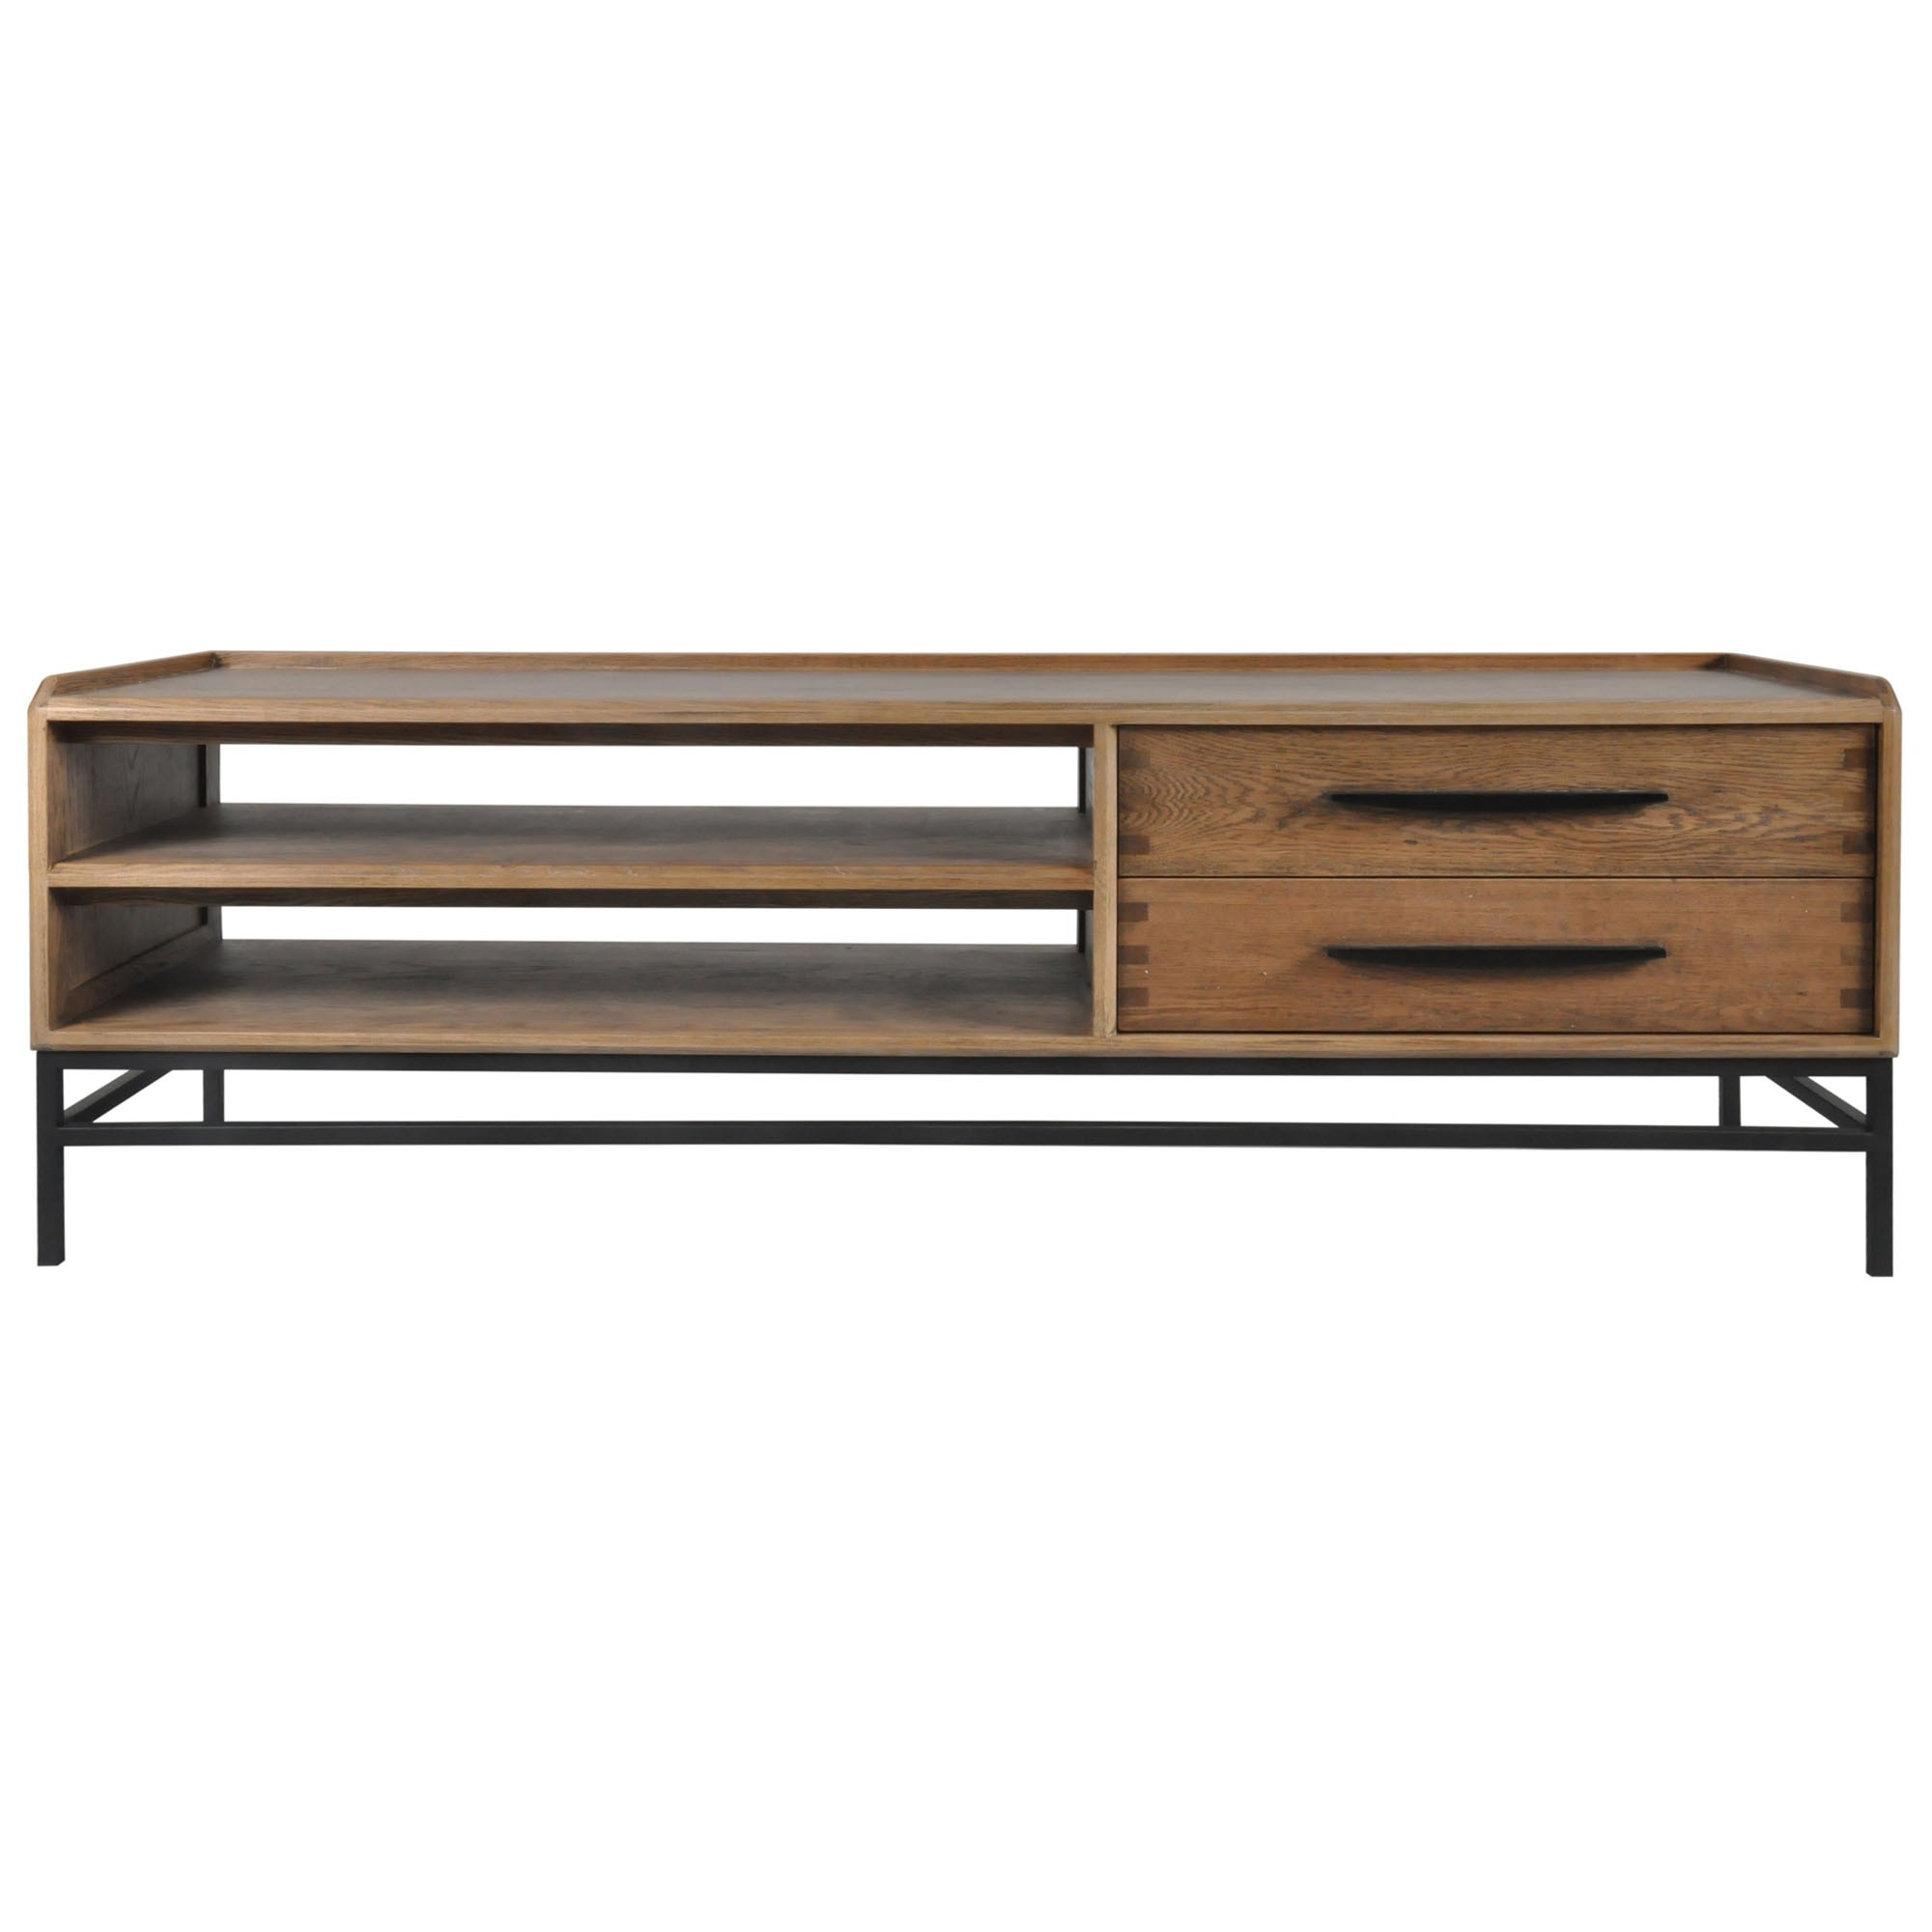 Reverie Oak Timber & Iron 2 Drawer TV Unit, 180cm